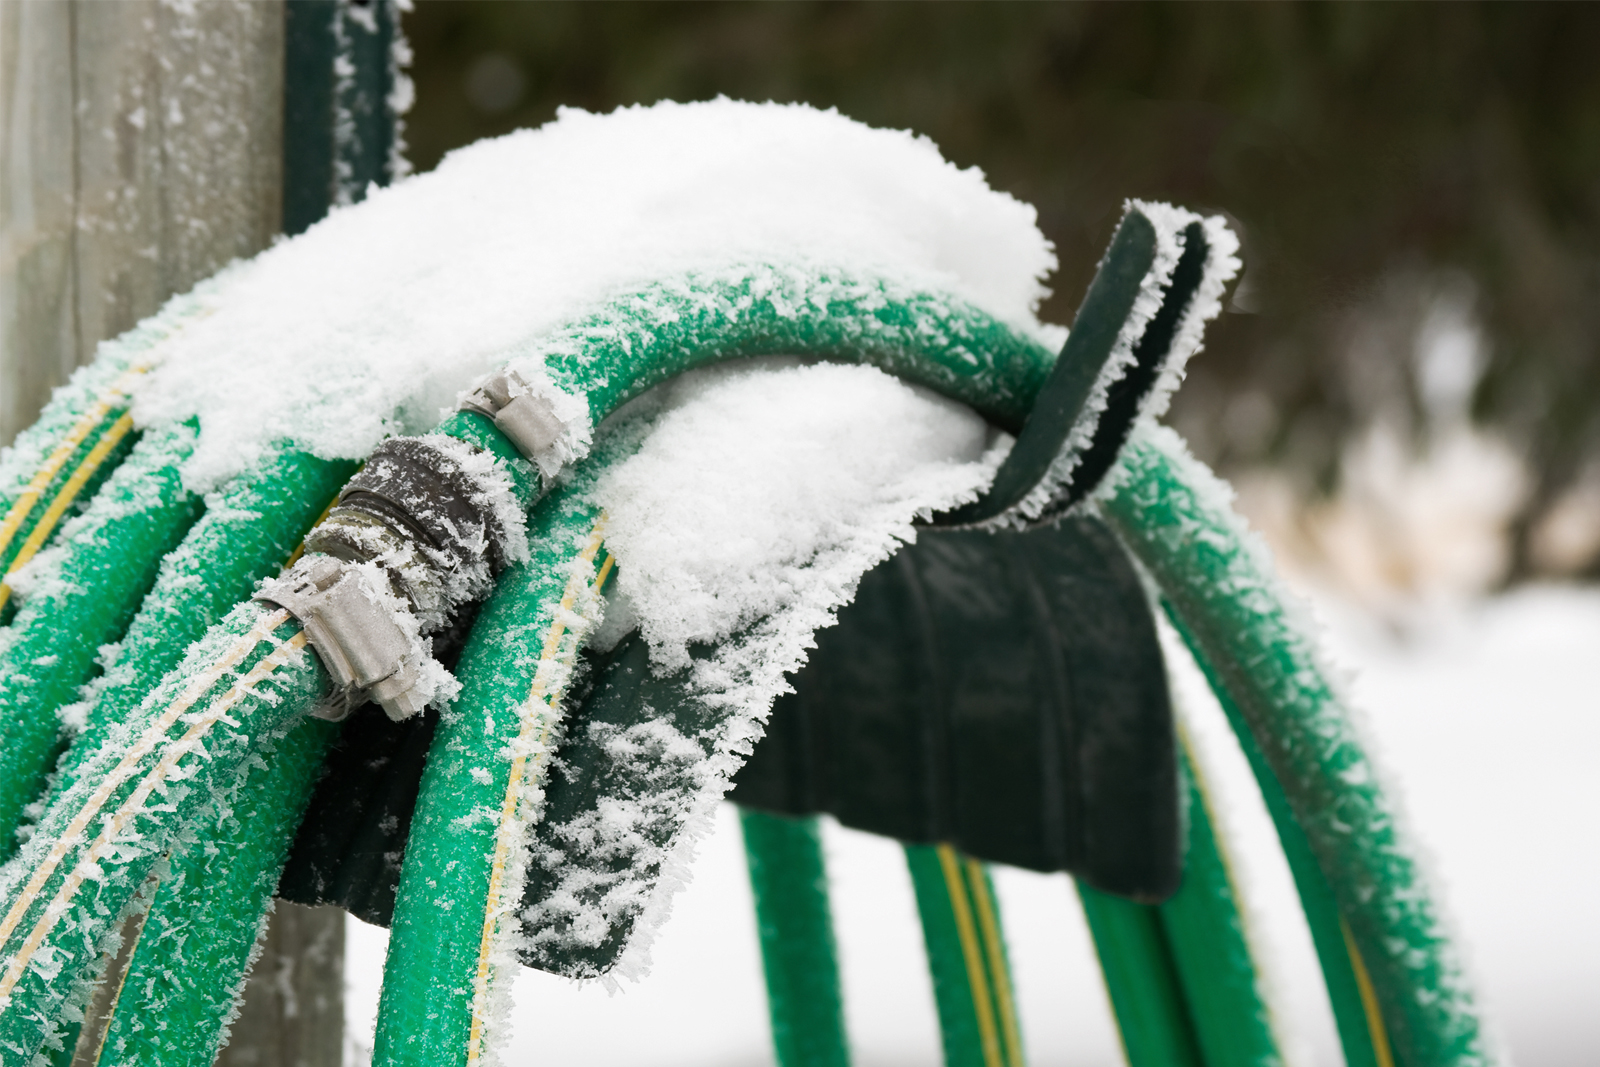 Frozen garden hose outside a house